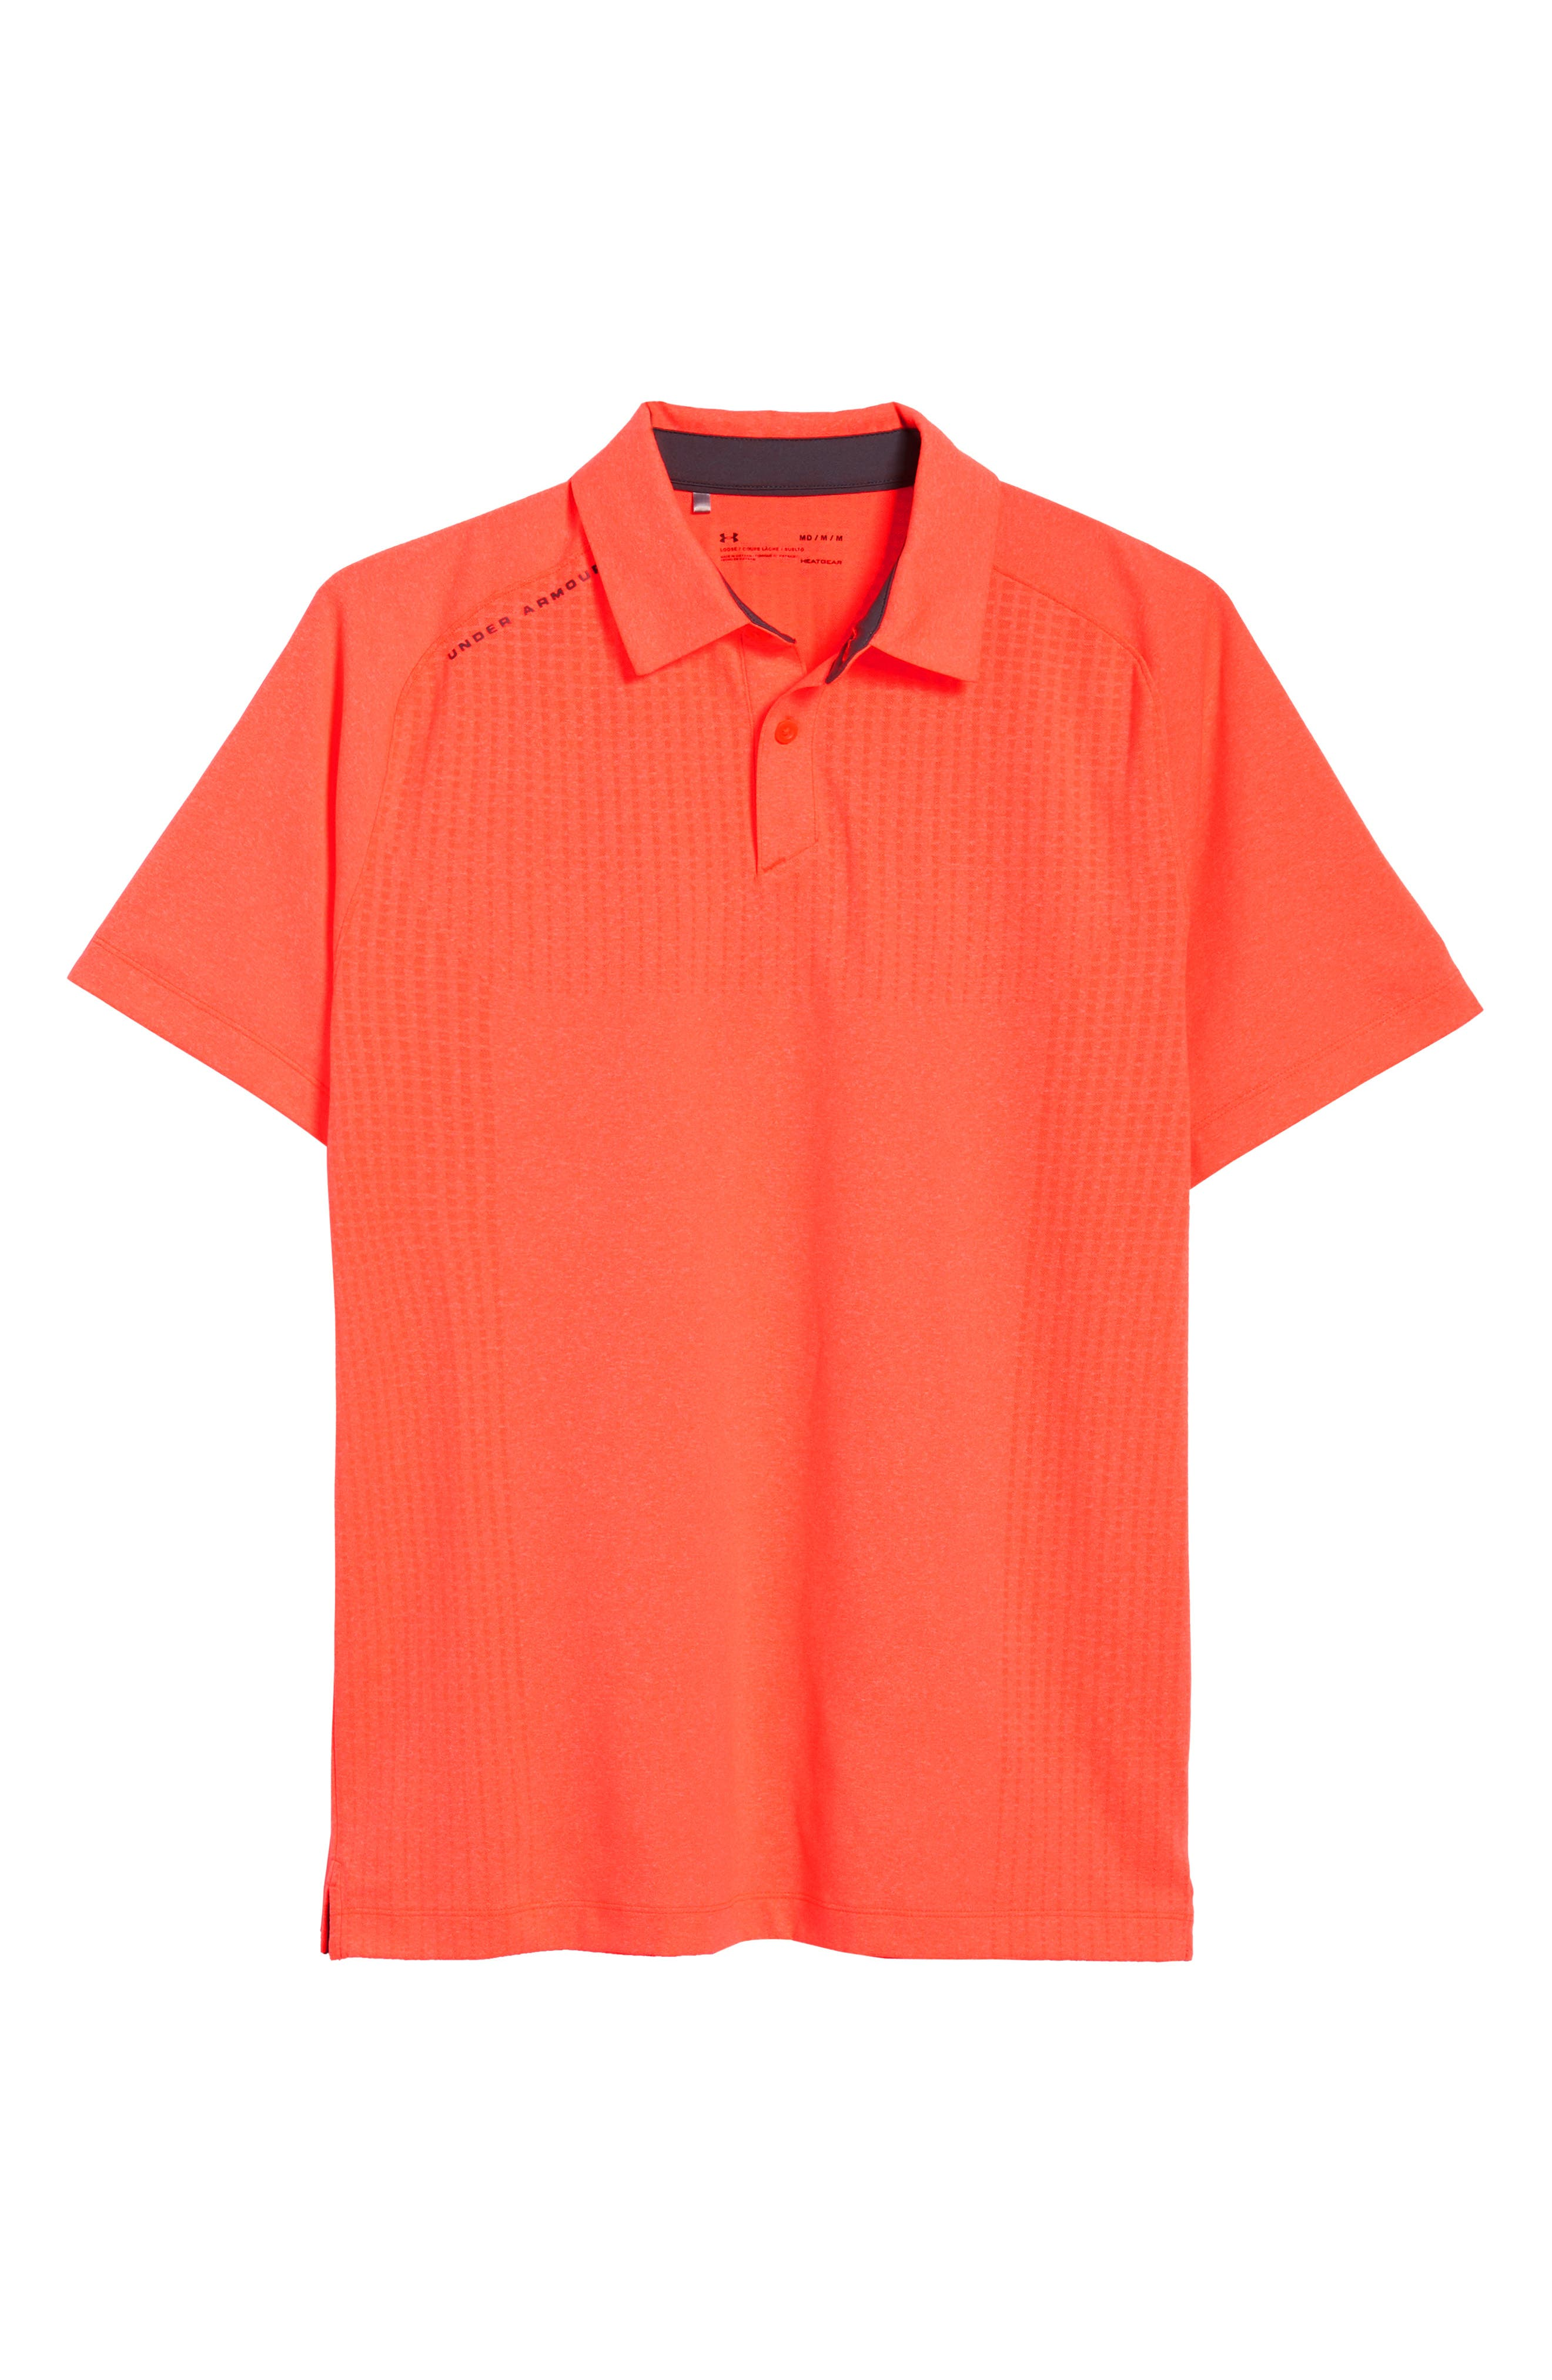 UNDER ARMOUR, Threadborne Outer Glow Regular Fit Polo Shirt, Alternate thumbnail 6, color, NEON CORAL LIGHT/ HEATHER